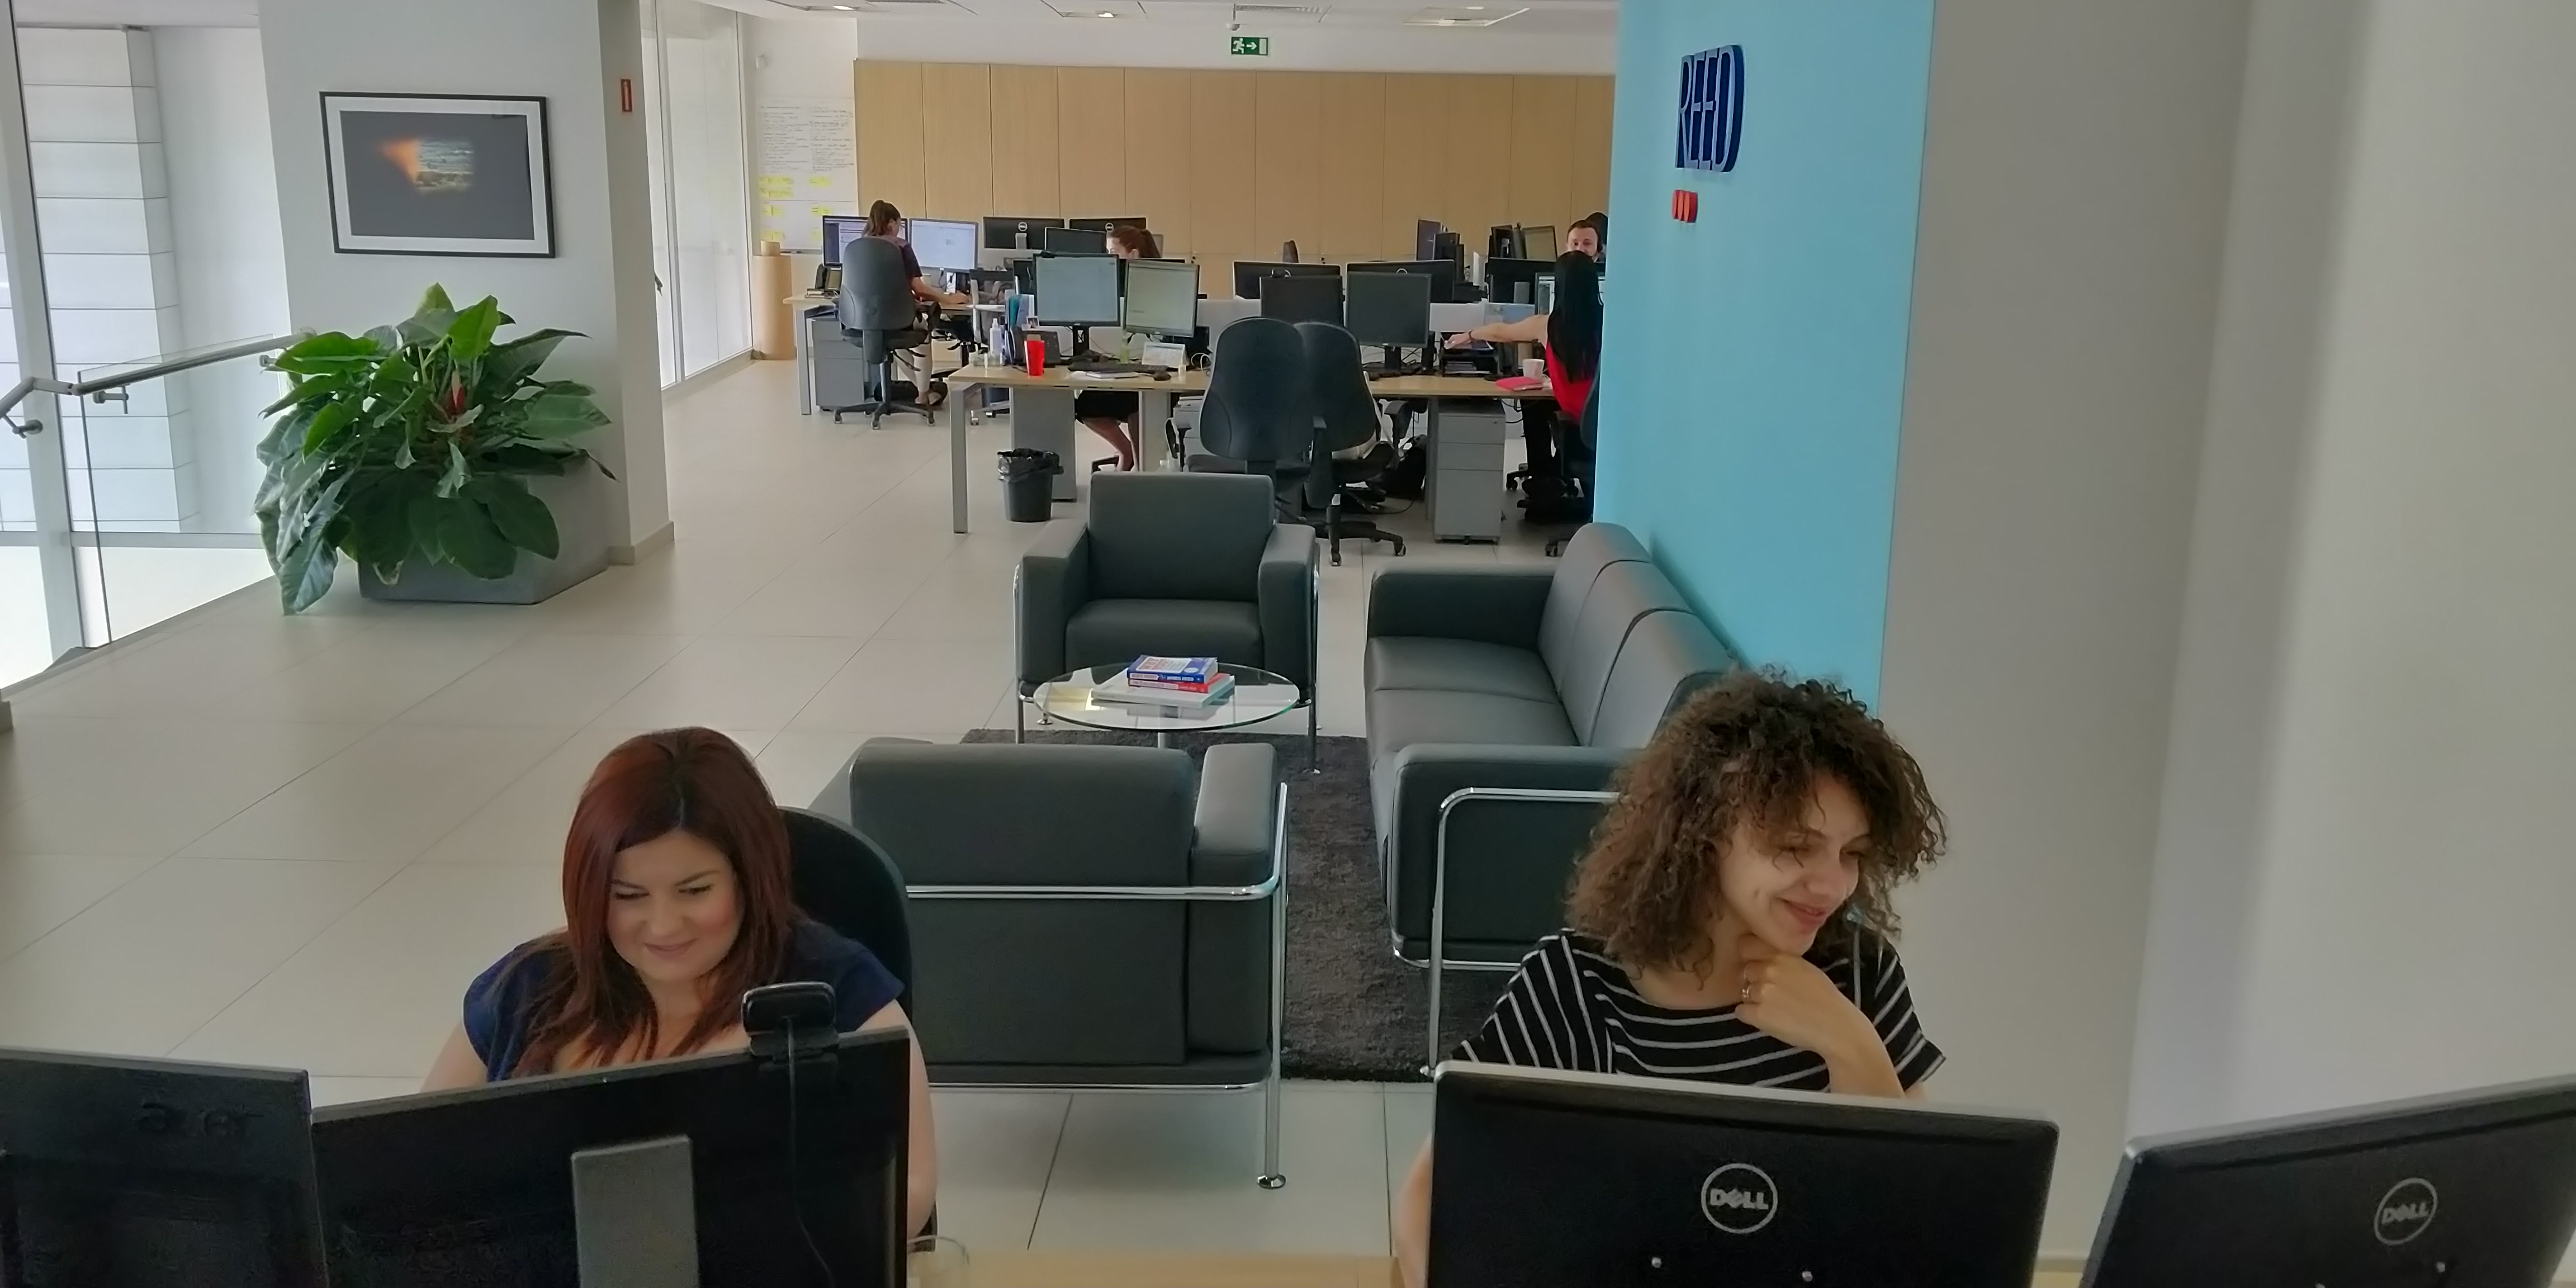 Malta office - reed employees at desks with office behind them